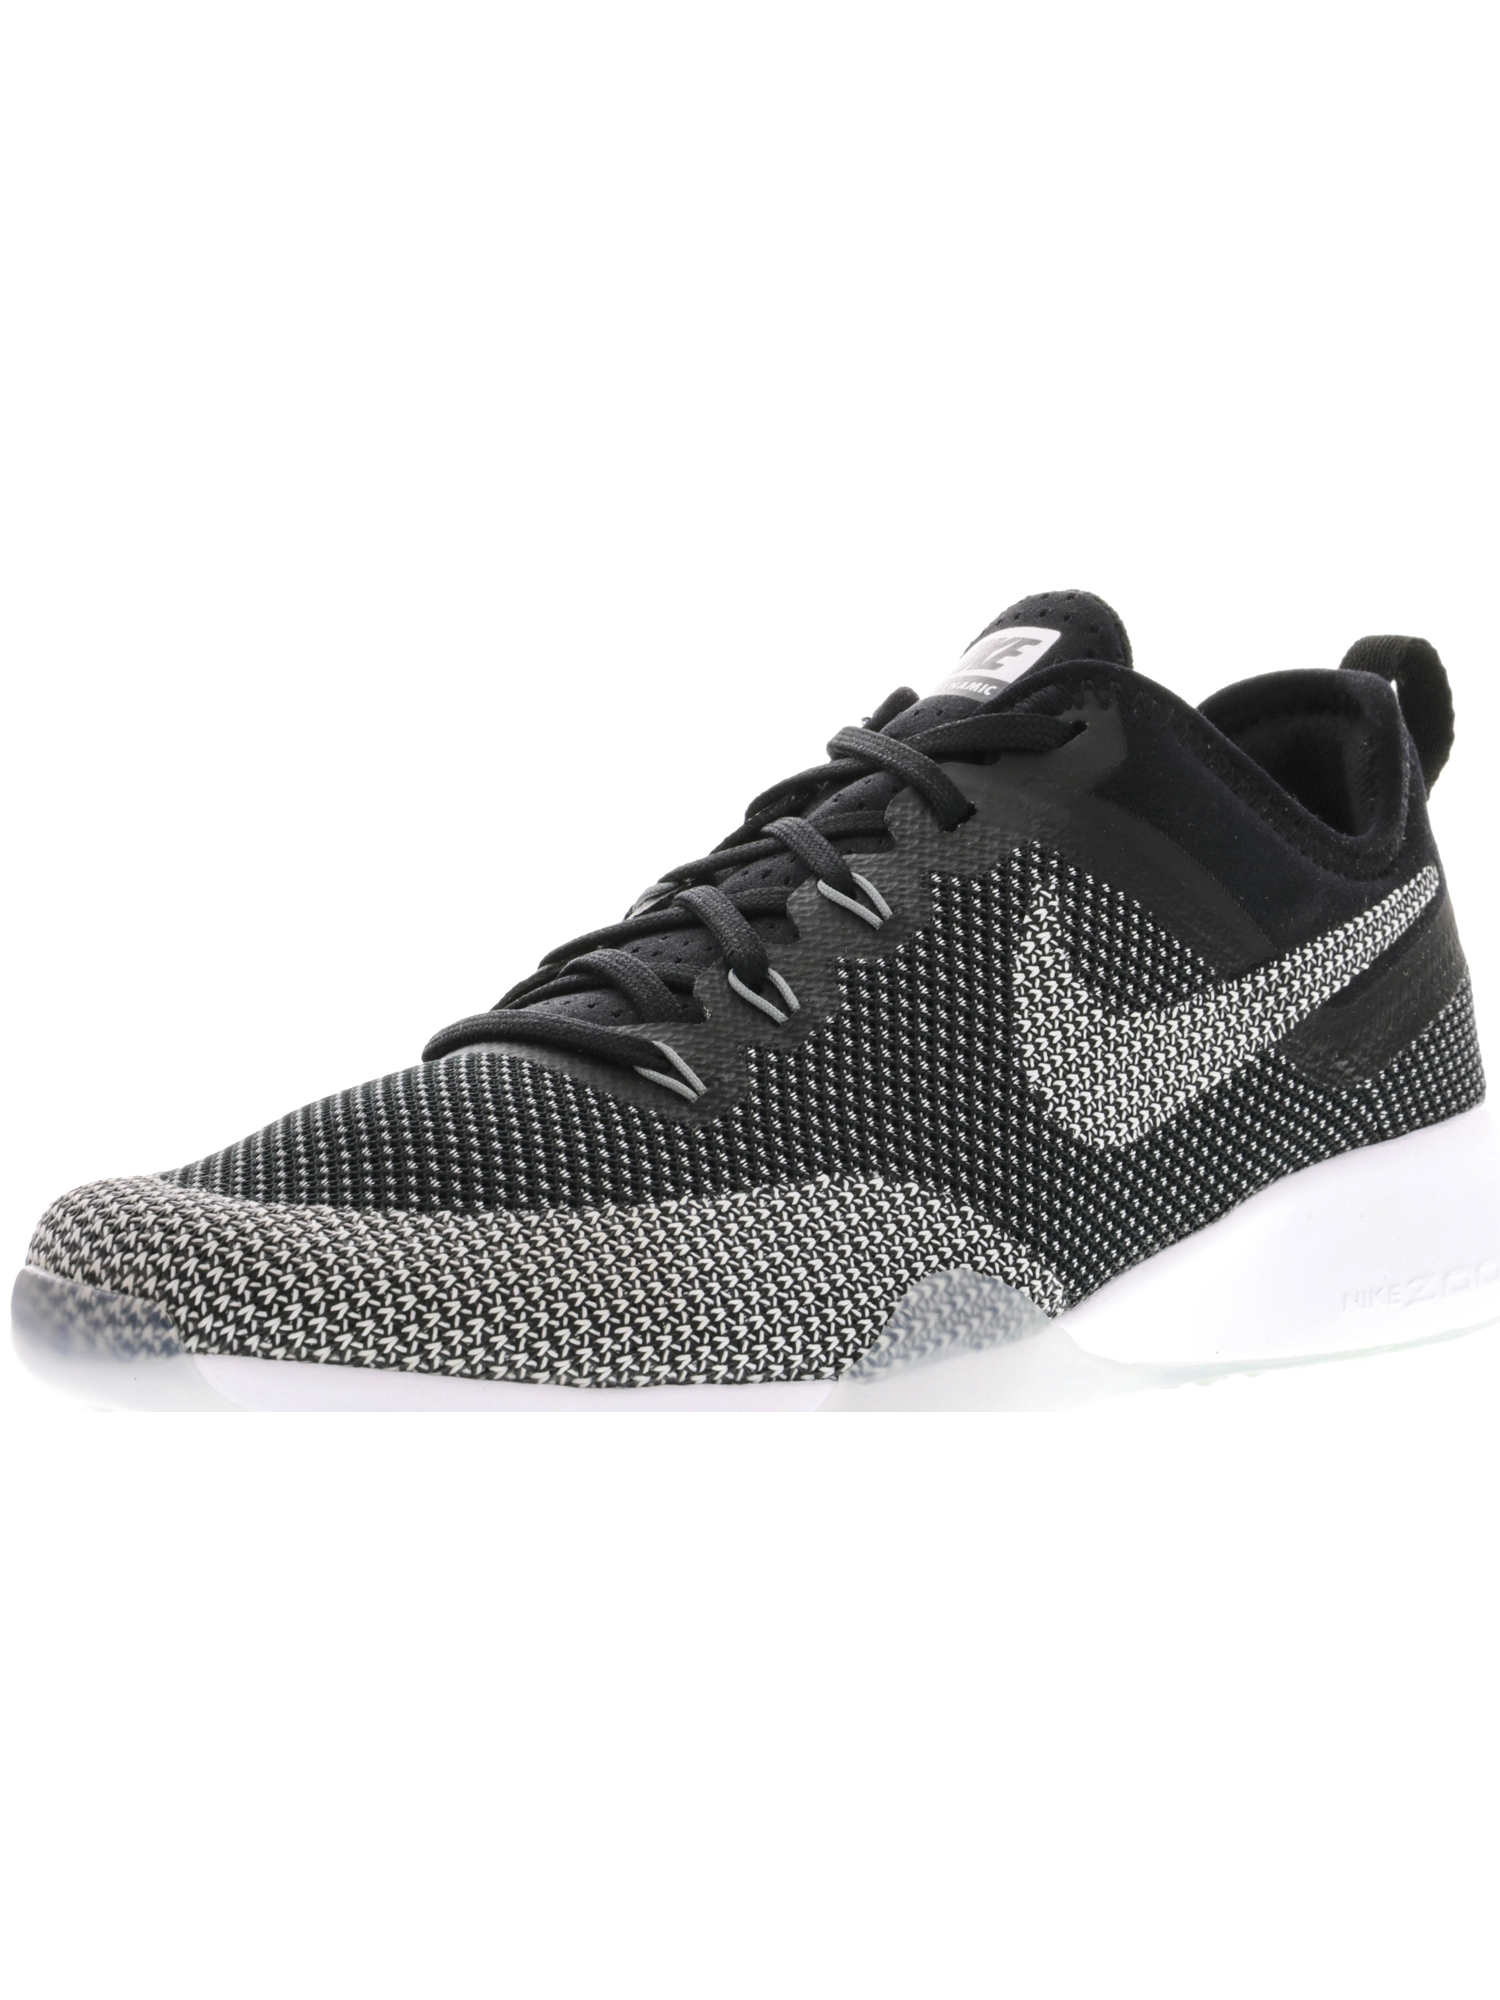 White Cool Grey Ankle-High Running Shoe